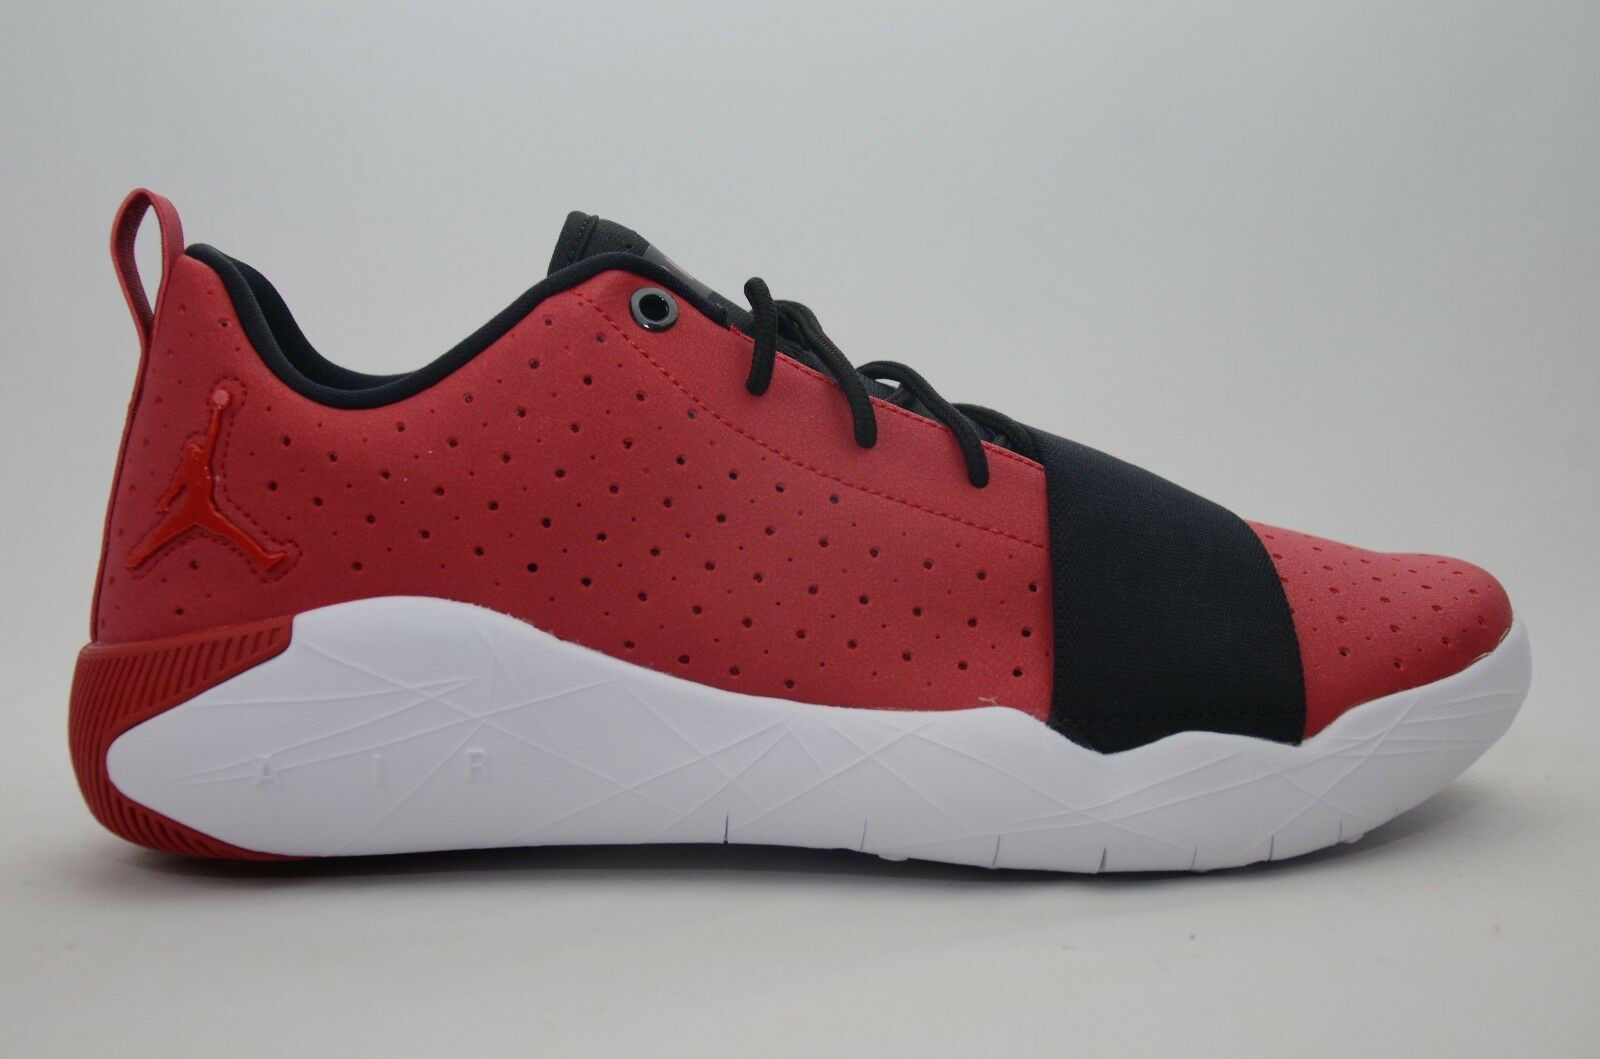 d3f29447097 Jordan 23 Breakout Red Black Men's 8-13 New in Box 881449 601 Size Nike  nepxdz2827-Athletic Shoes